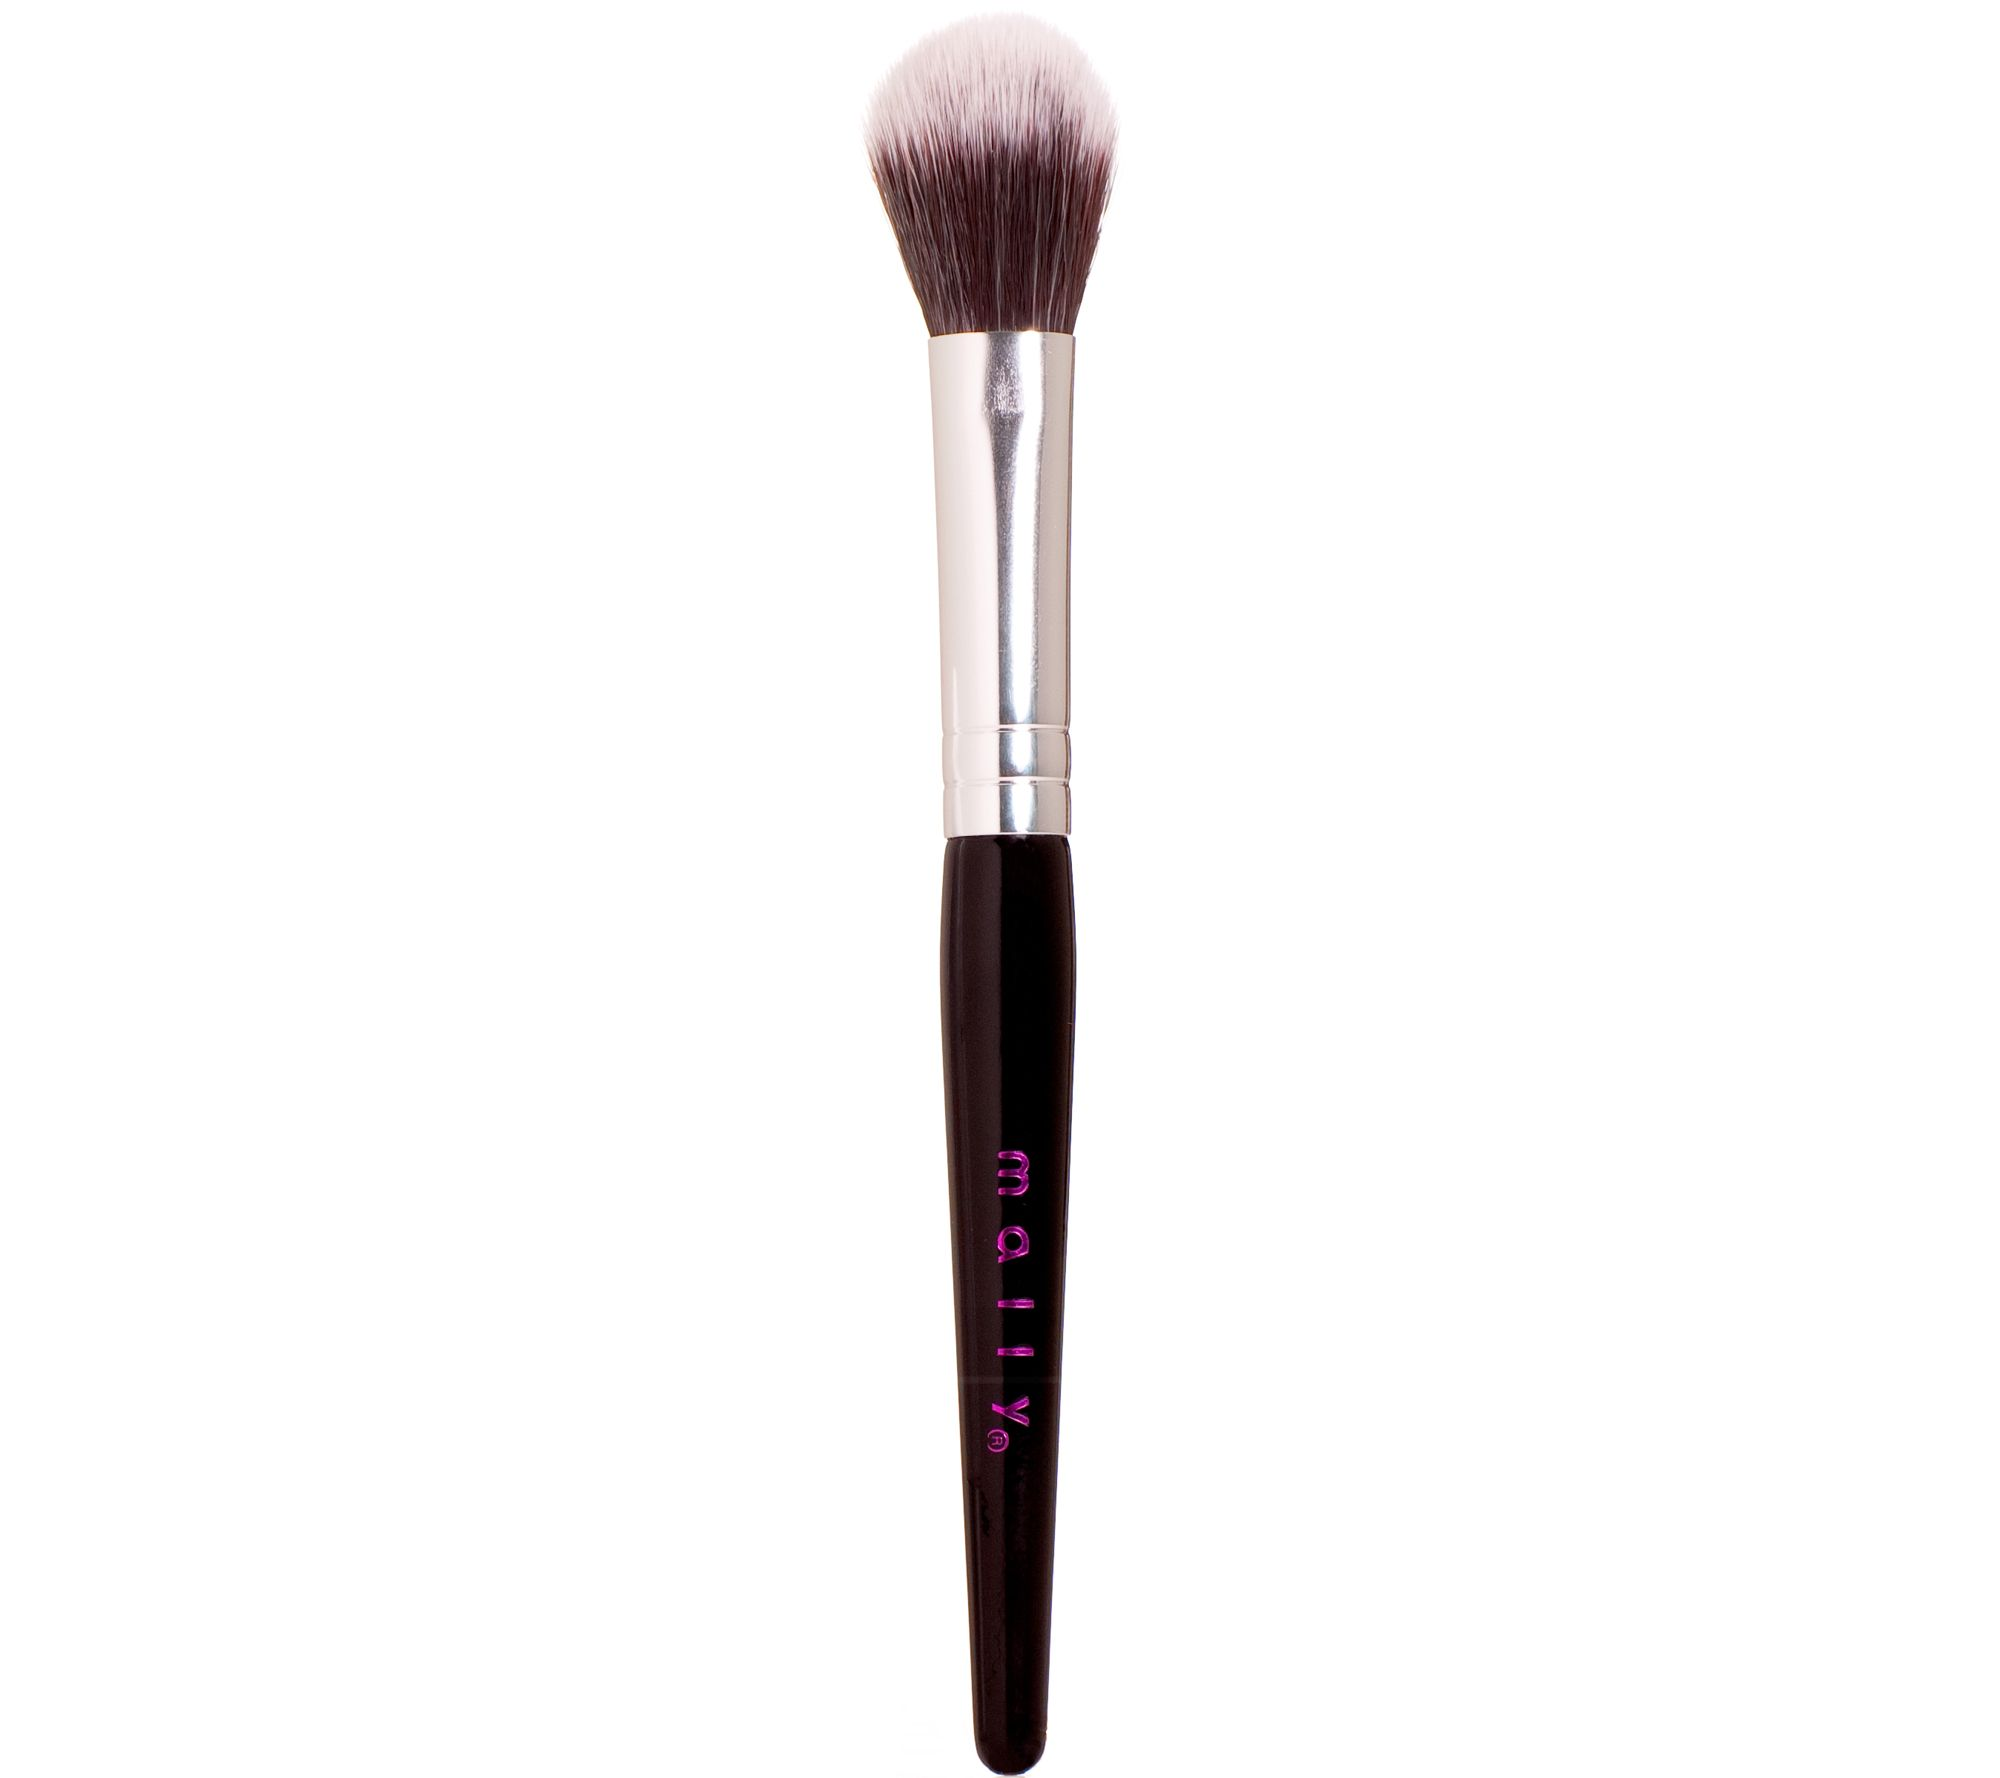 Mally Beauty Concealer Brush Qvc Com